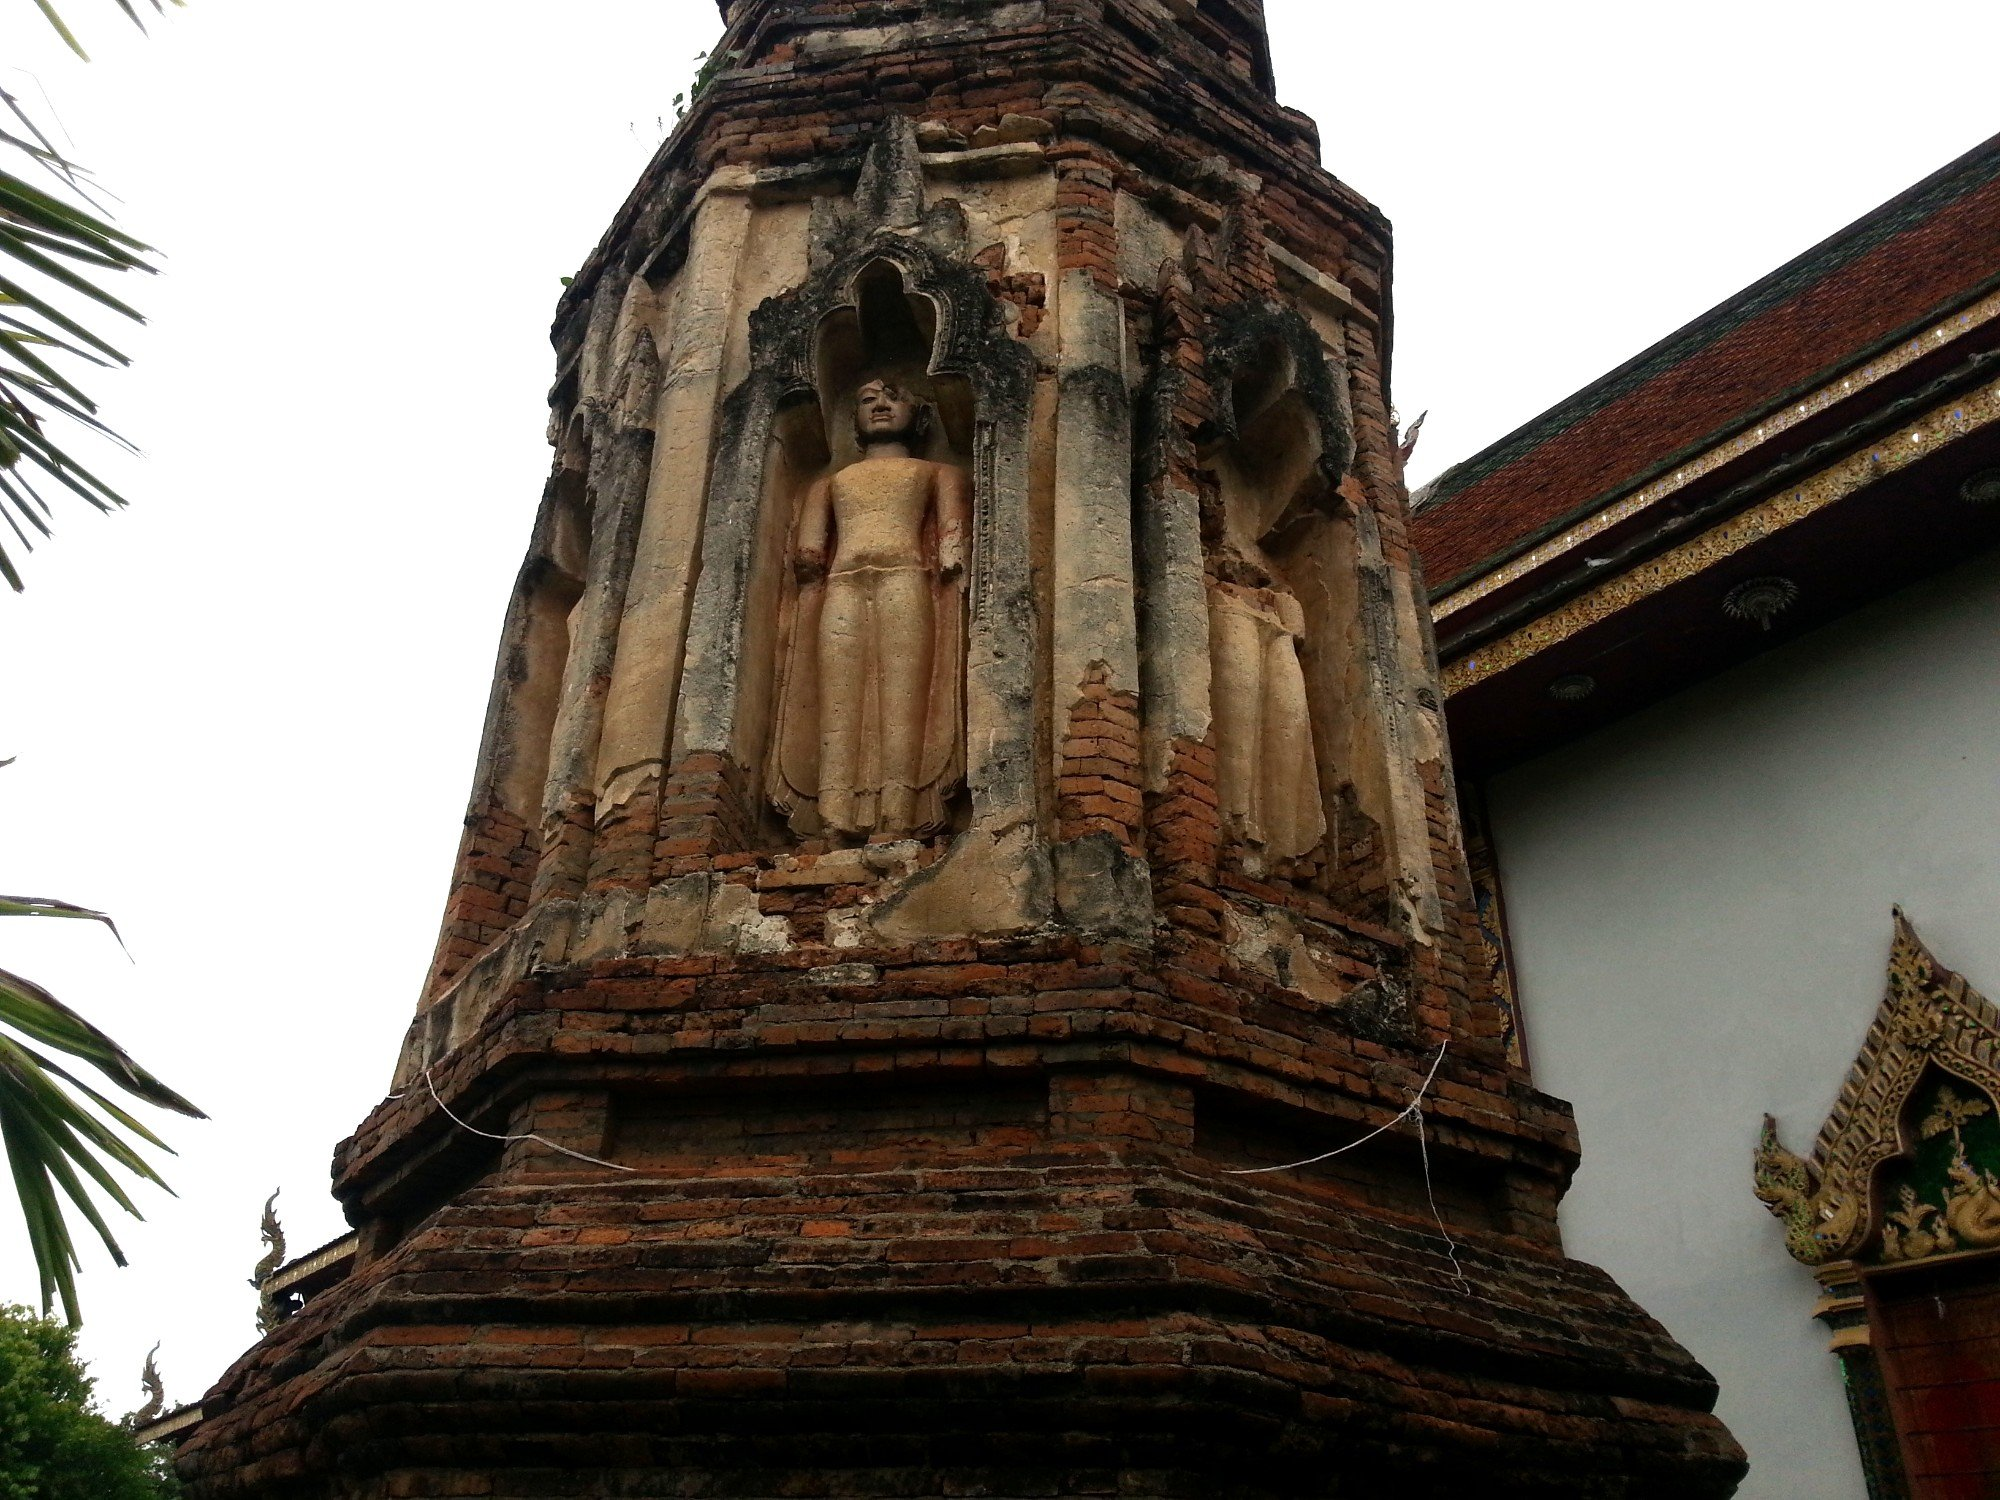 Carvings on the Ratana Chedi